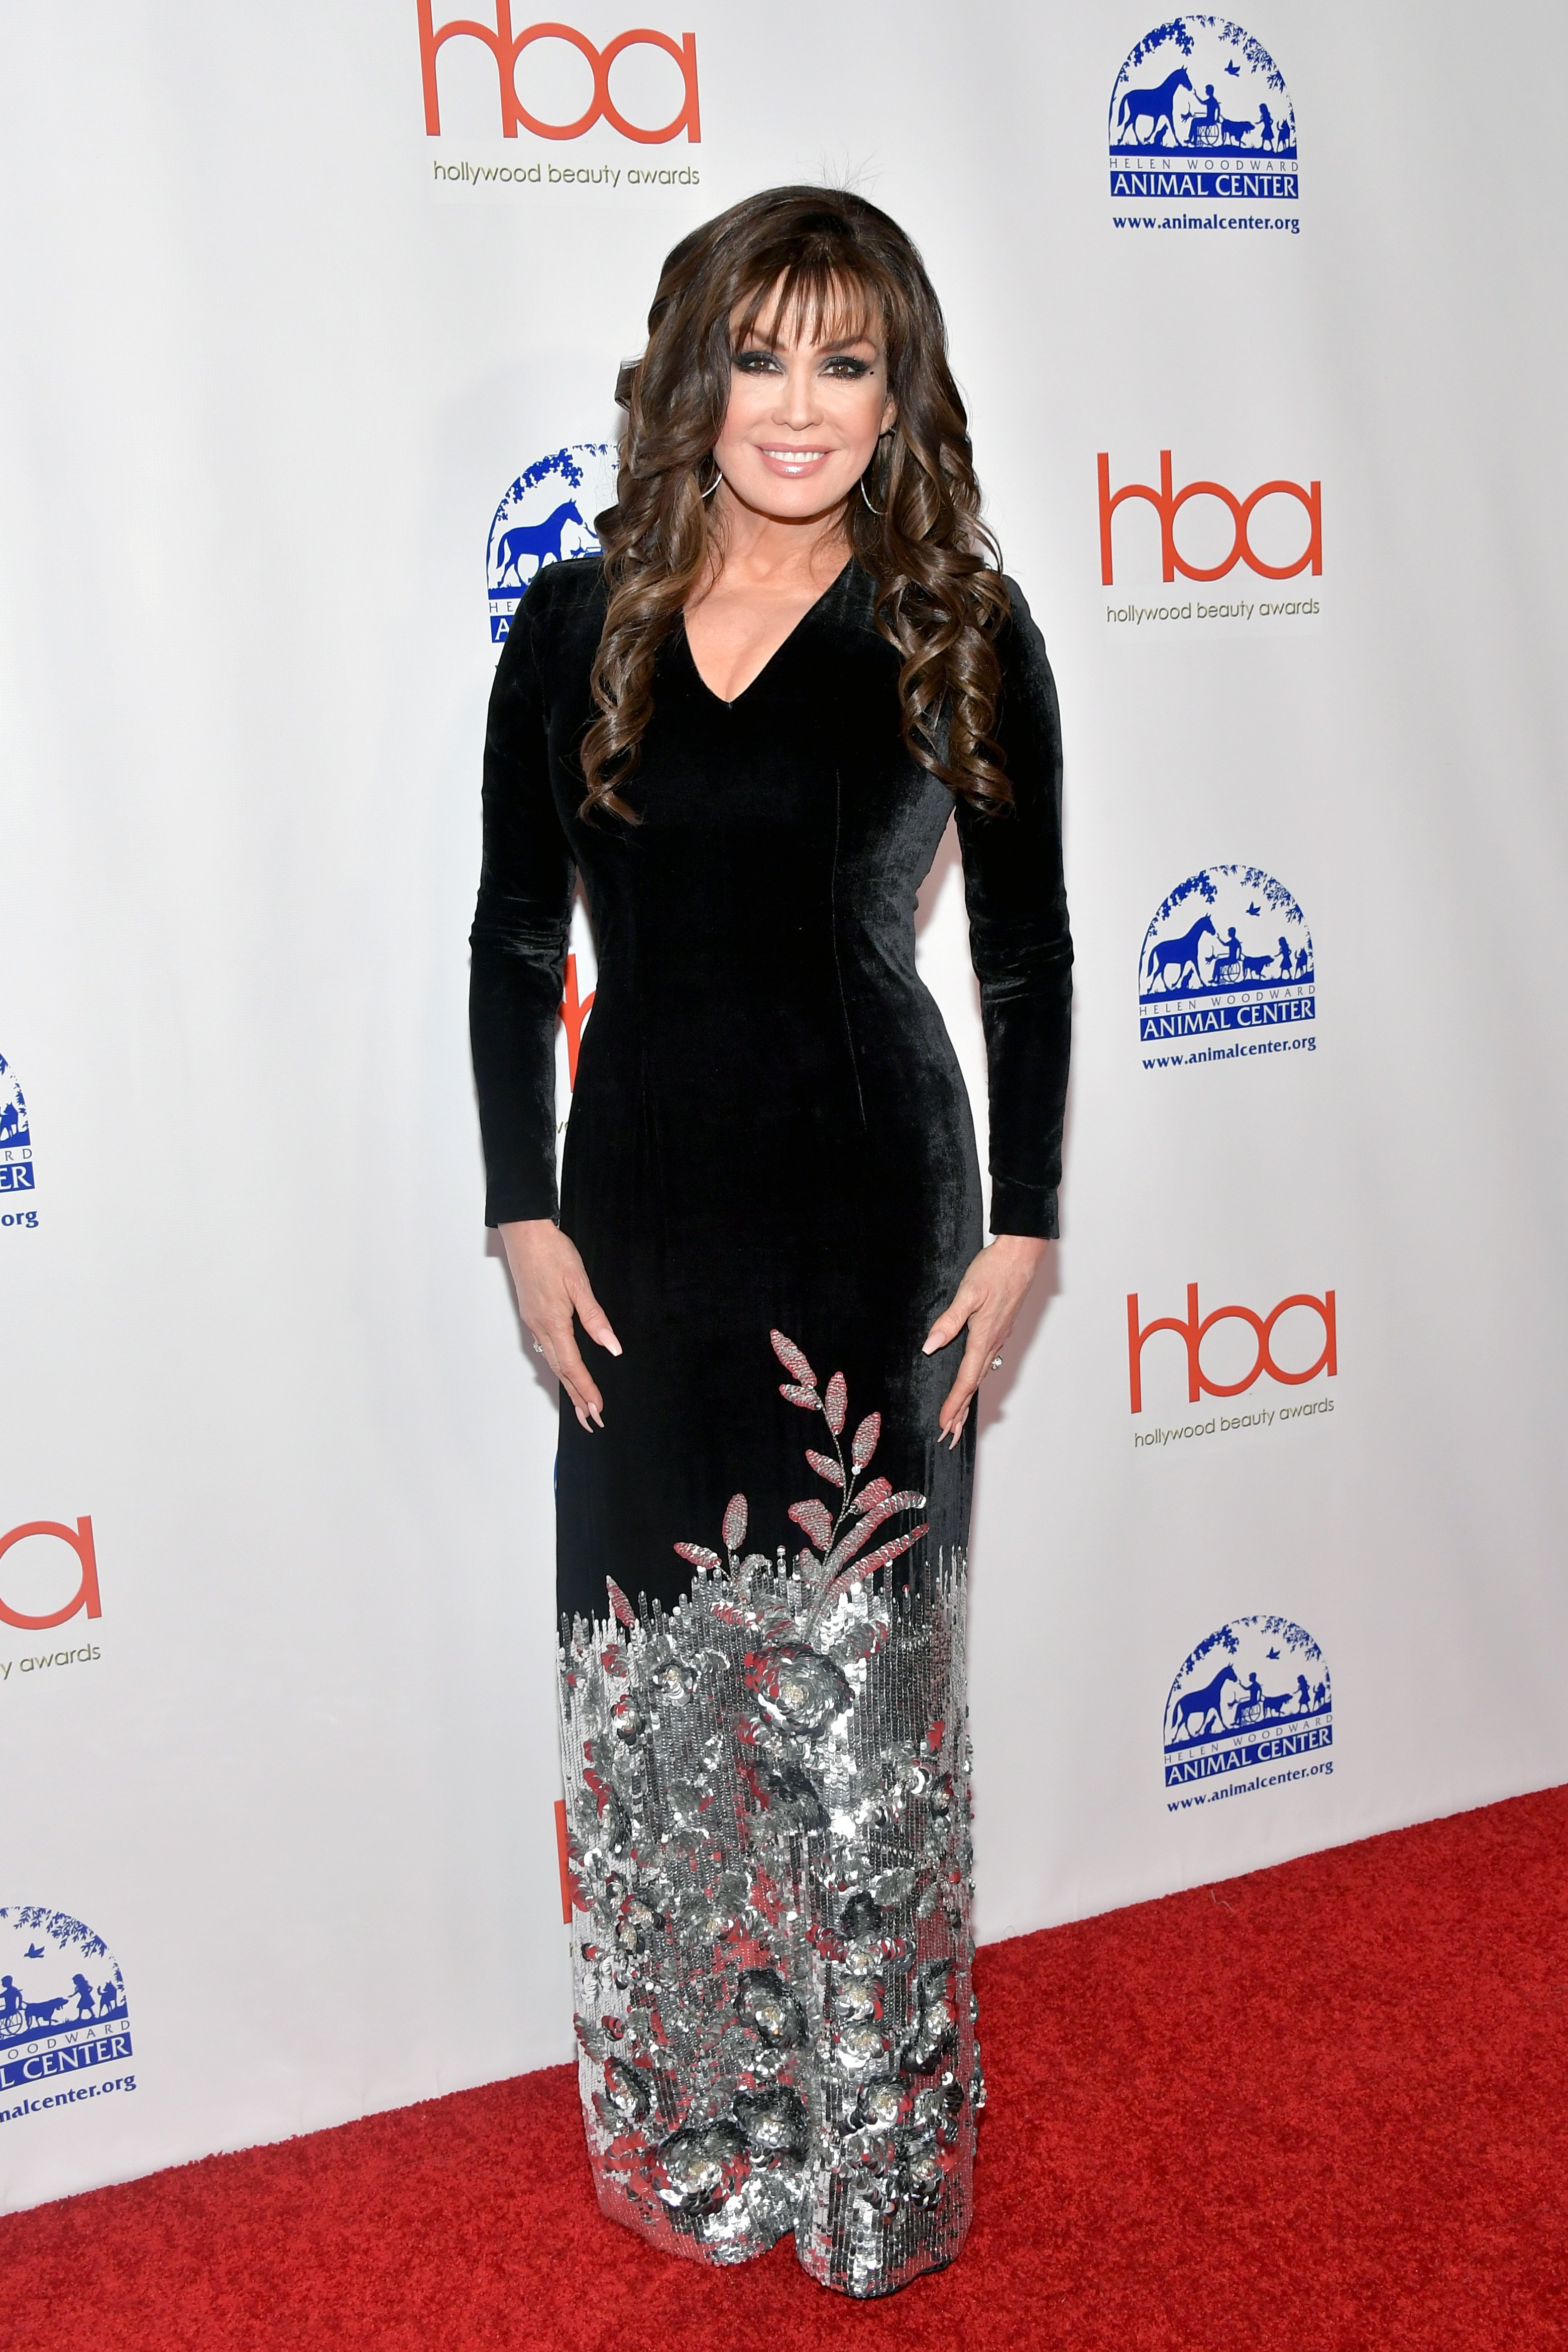 Marie Osmond attends the 2019 Hollywood Beauty Awards at Avalon Hollywood on February 17, 2019, in Los Angeles, California. | Source: Getty Images.